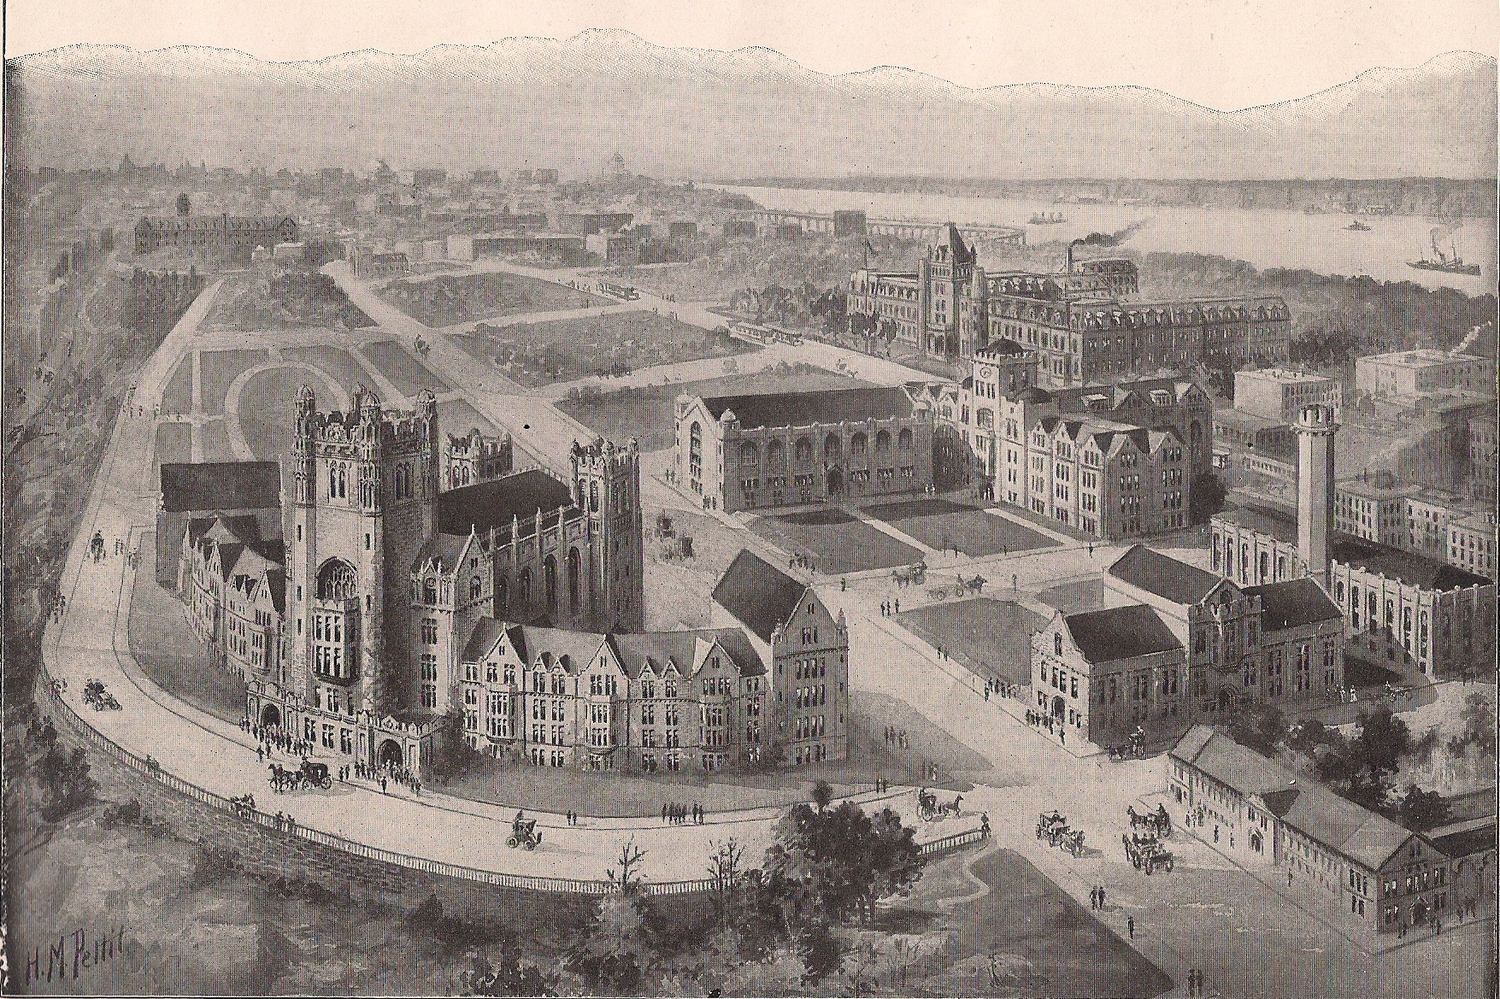 College of the City of New York (King's Views of New York)